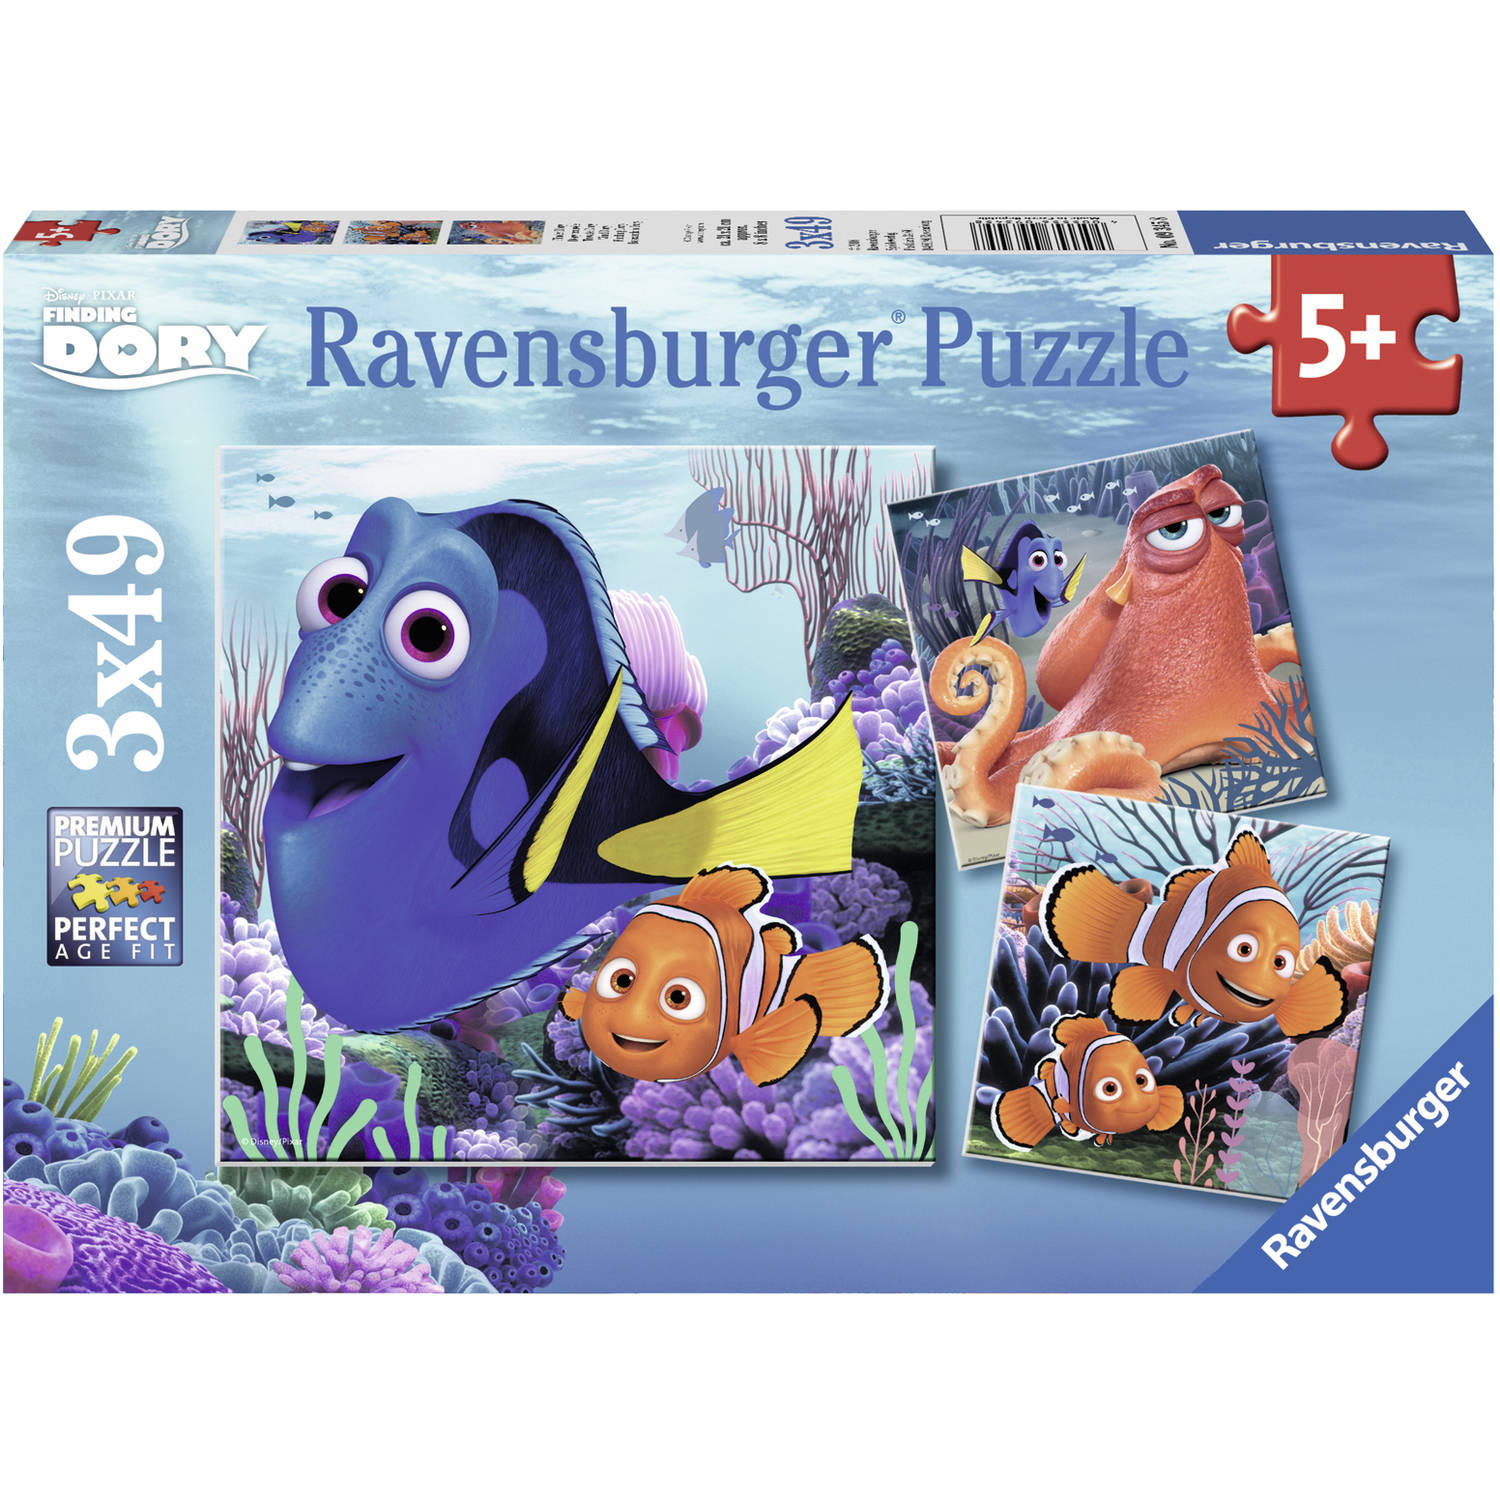 Ravensburger Disney Finding Dory Set of 3 Puzzles in a Box